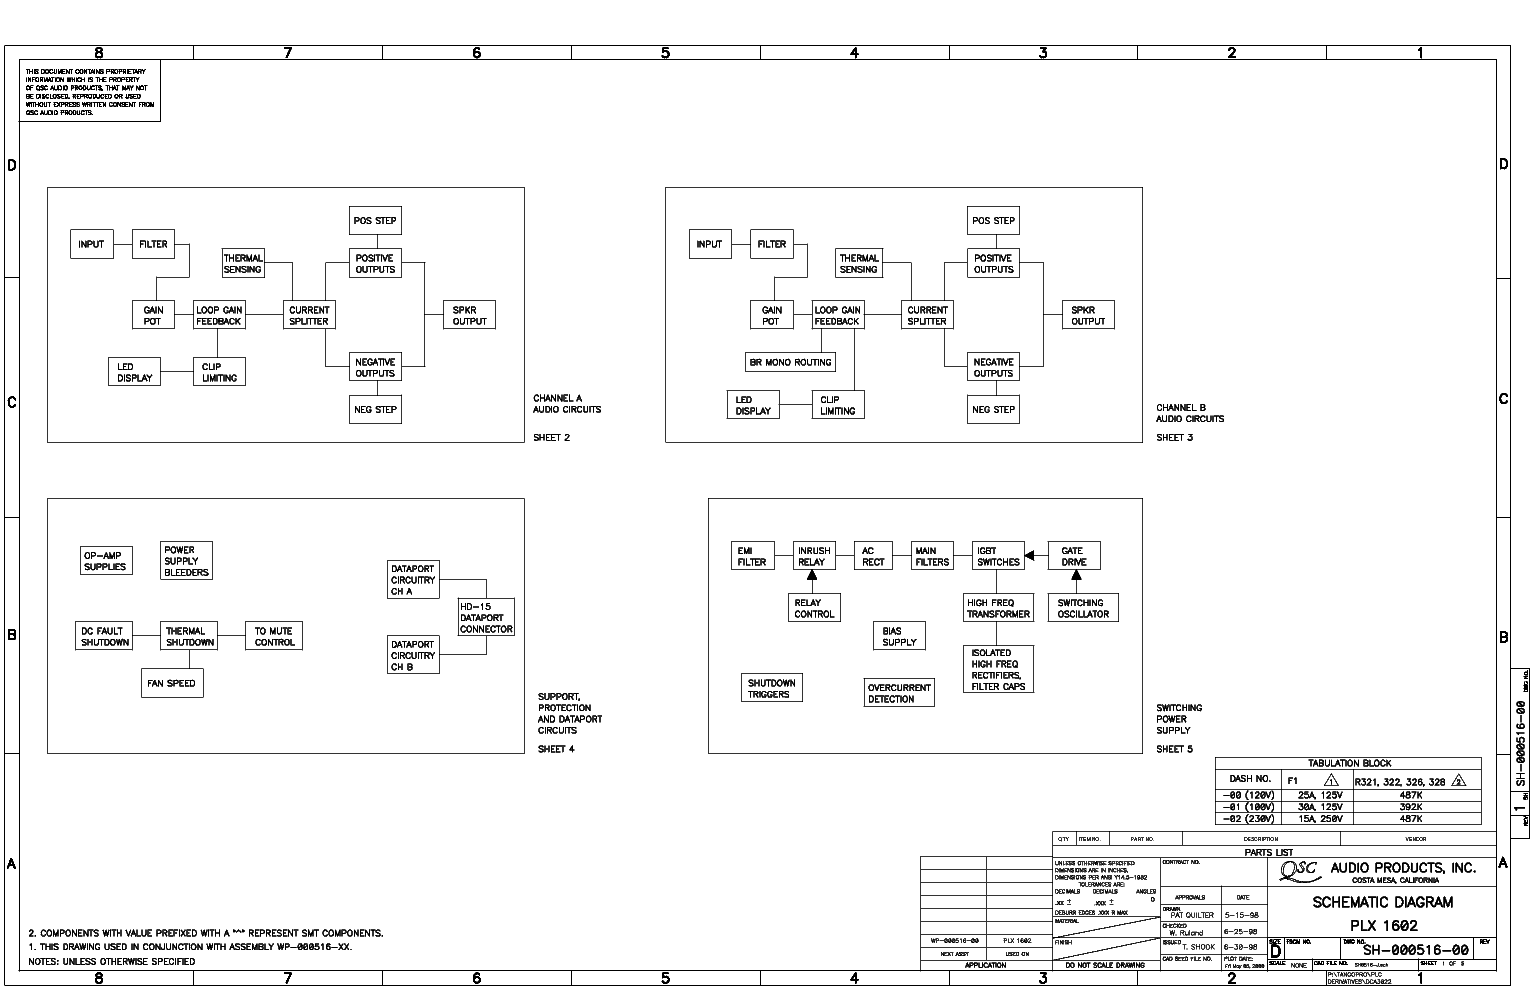 qsc_plx1602.pdf_1 Qsc Plx Schematic Diagram on isa 300ti, pl340 power supply, gx 3 amplifier, k-12 ksub, 1400 power amp, k10 speaker, usa 900 amplifier,